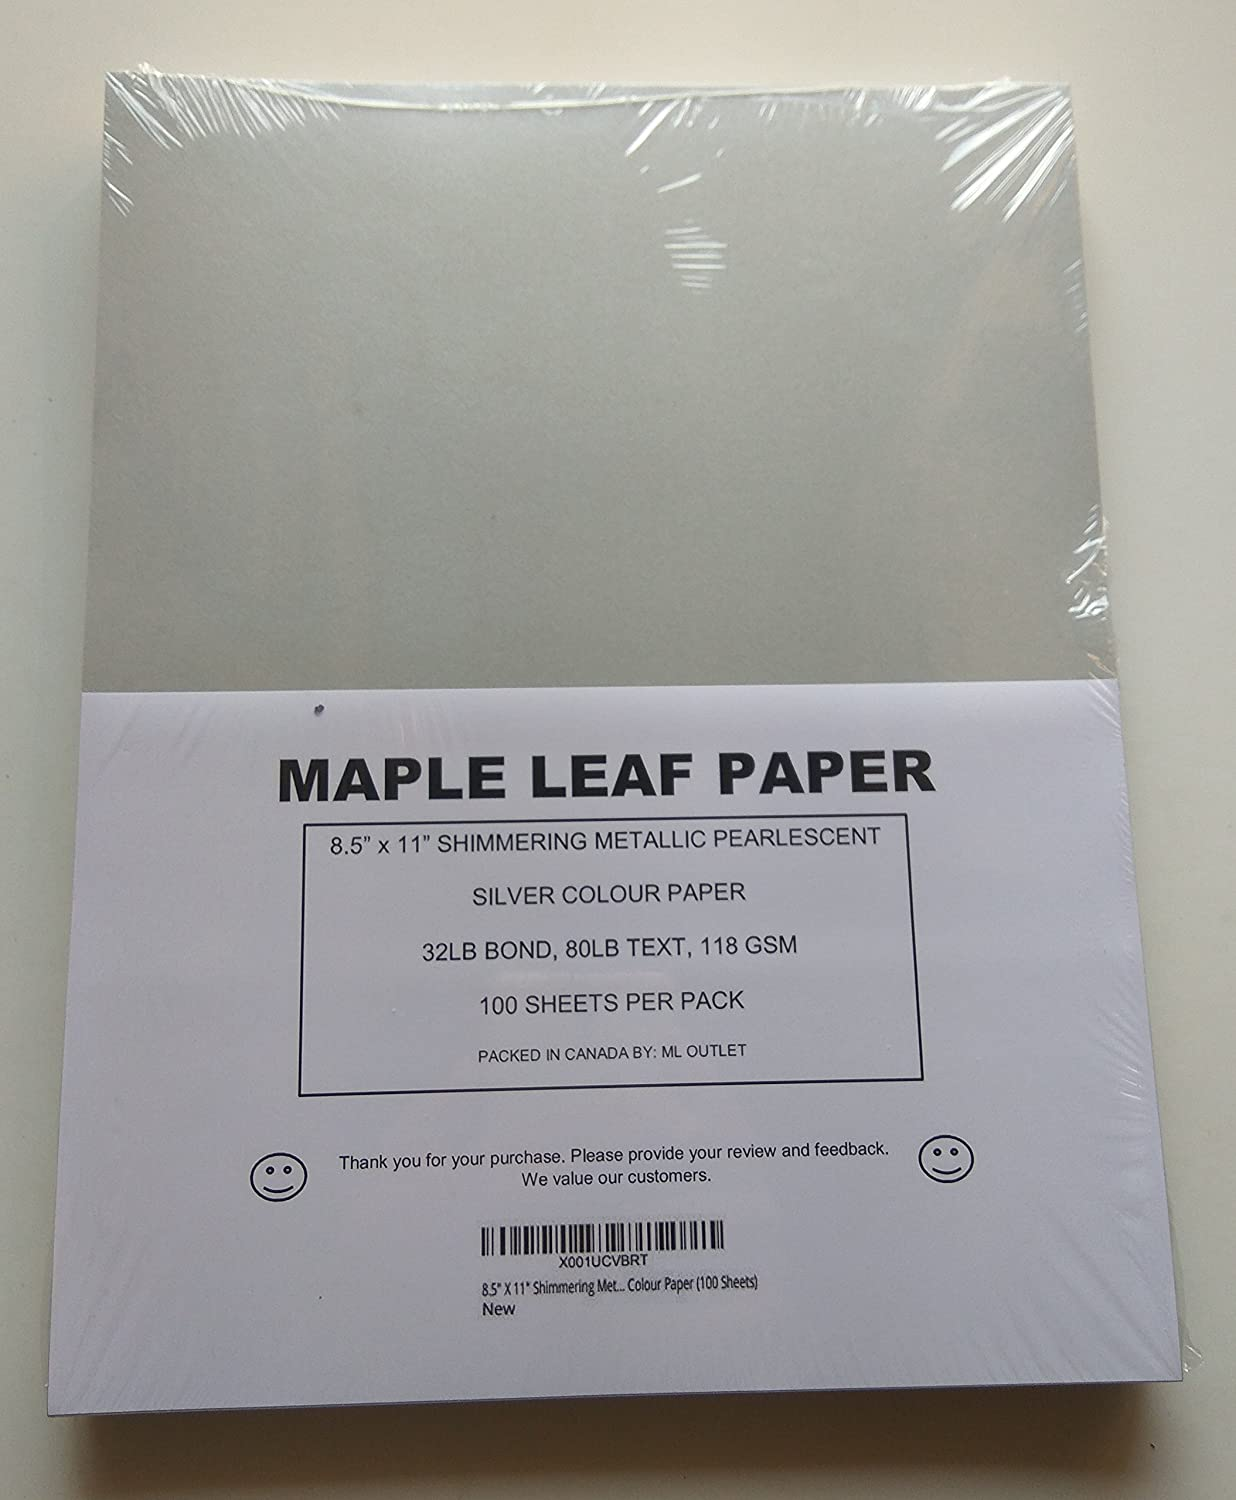 8.5 X 11 Shimmering Metallic Pearlescent Paper, 32LB Bond, 80LB Text, 118 GSM, Silver Colour Paper (50 Sheets) Maple Leaf Paper